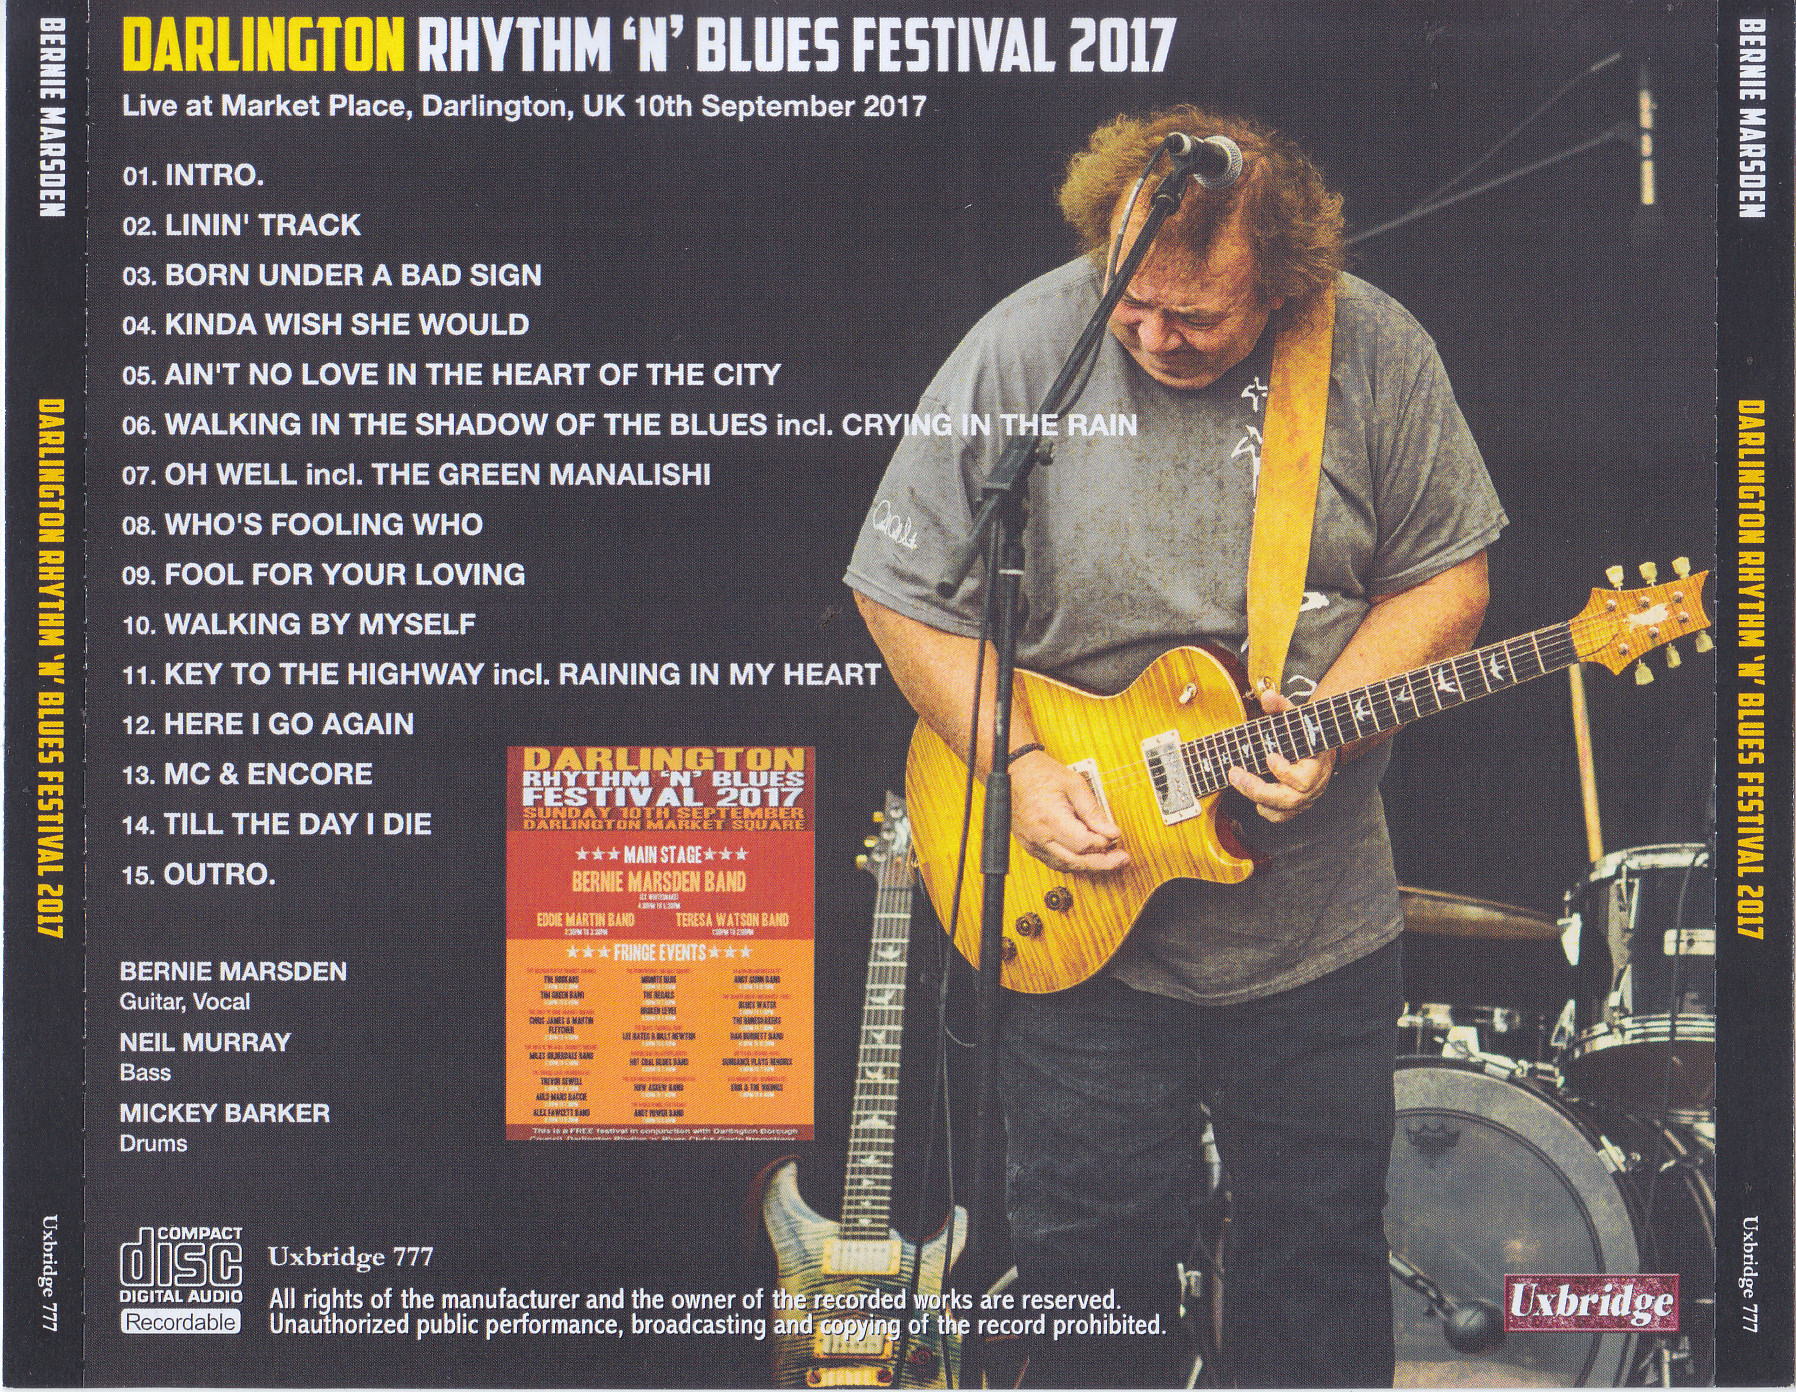 Darlington blues festival